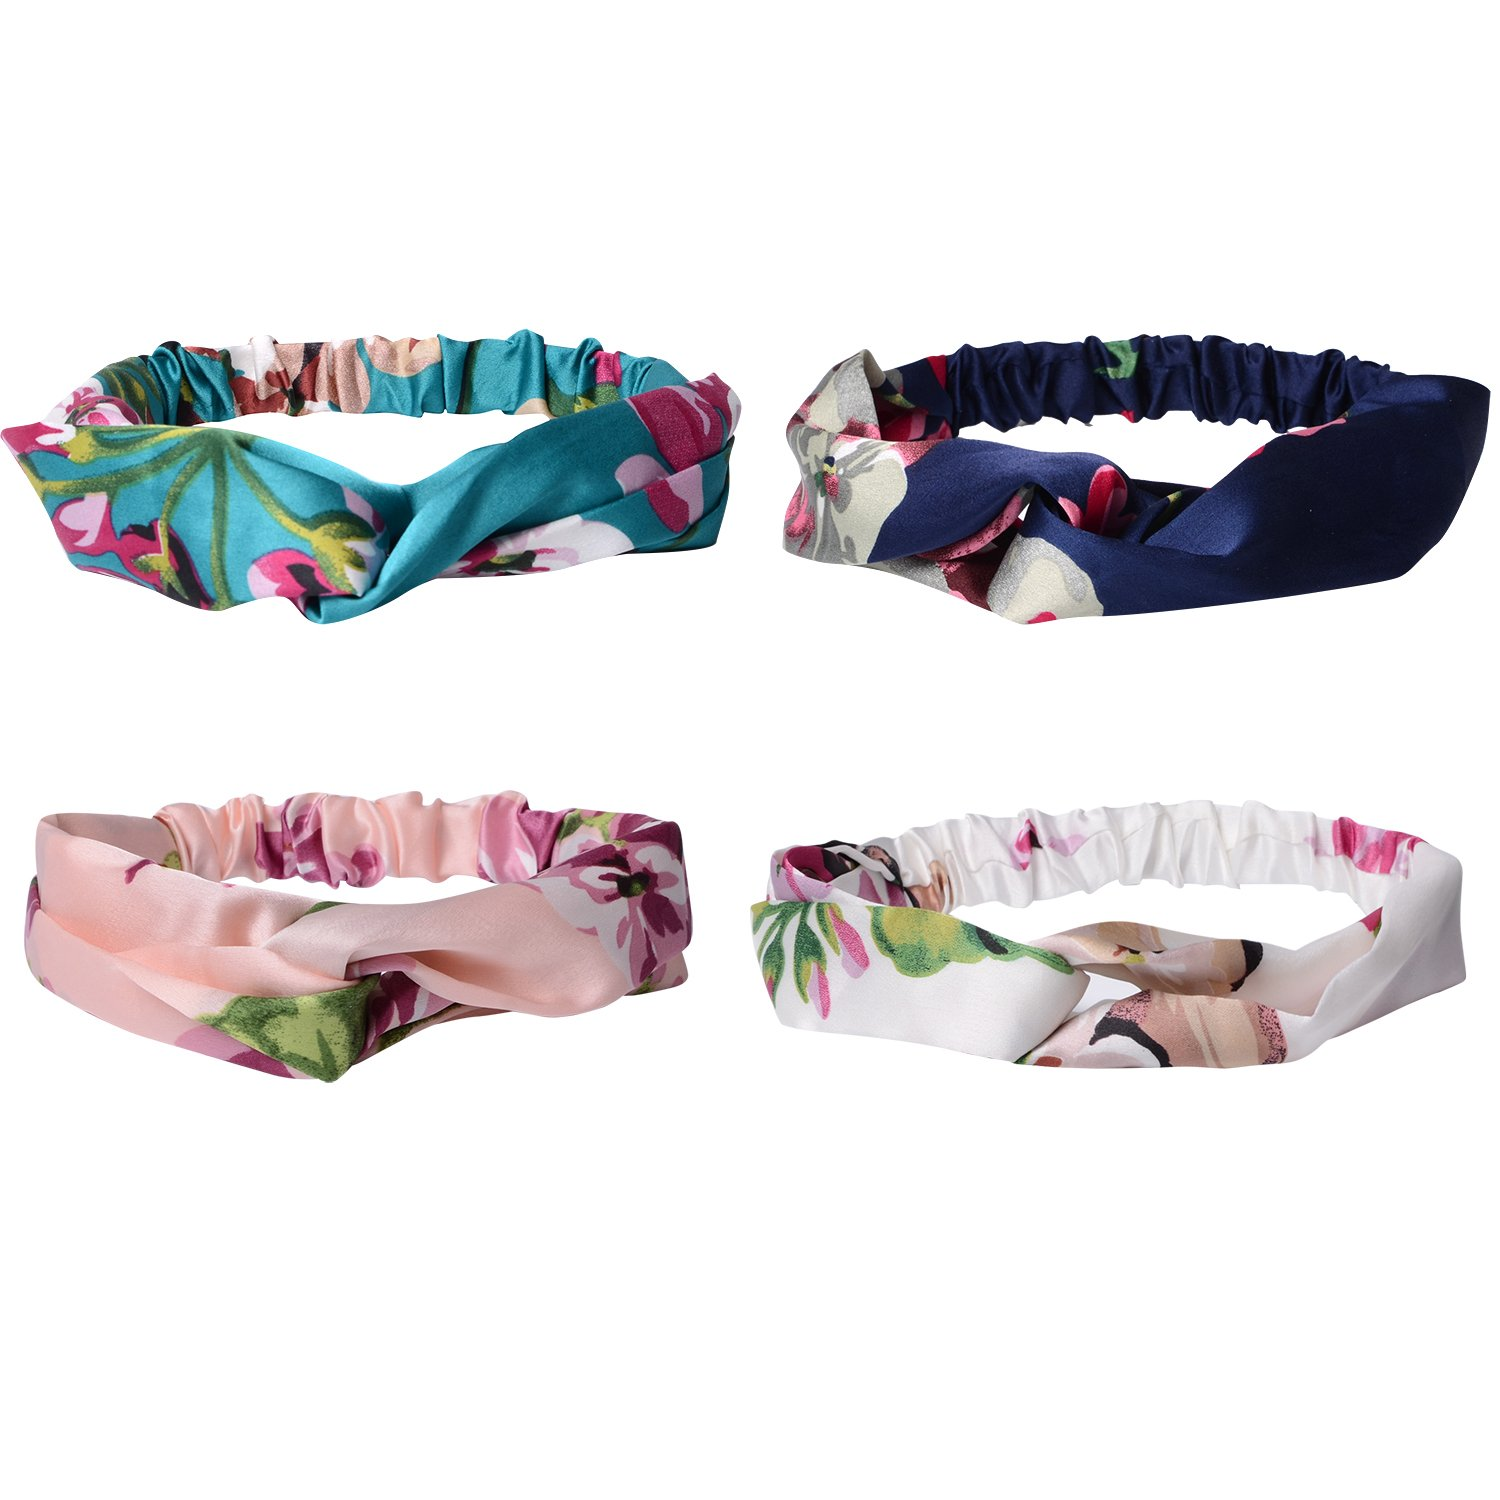 QBSM 4 Pack Women Headbands Floral Elastic Printed Head Wrap Stretchy Hairband for Sport or Daily Wear Sold by ChicSelect